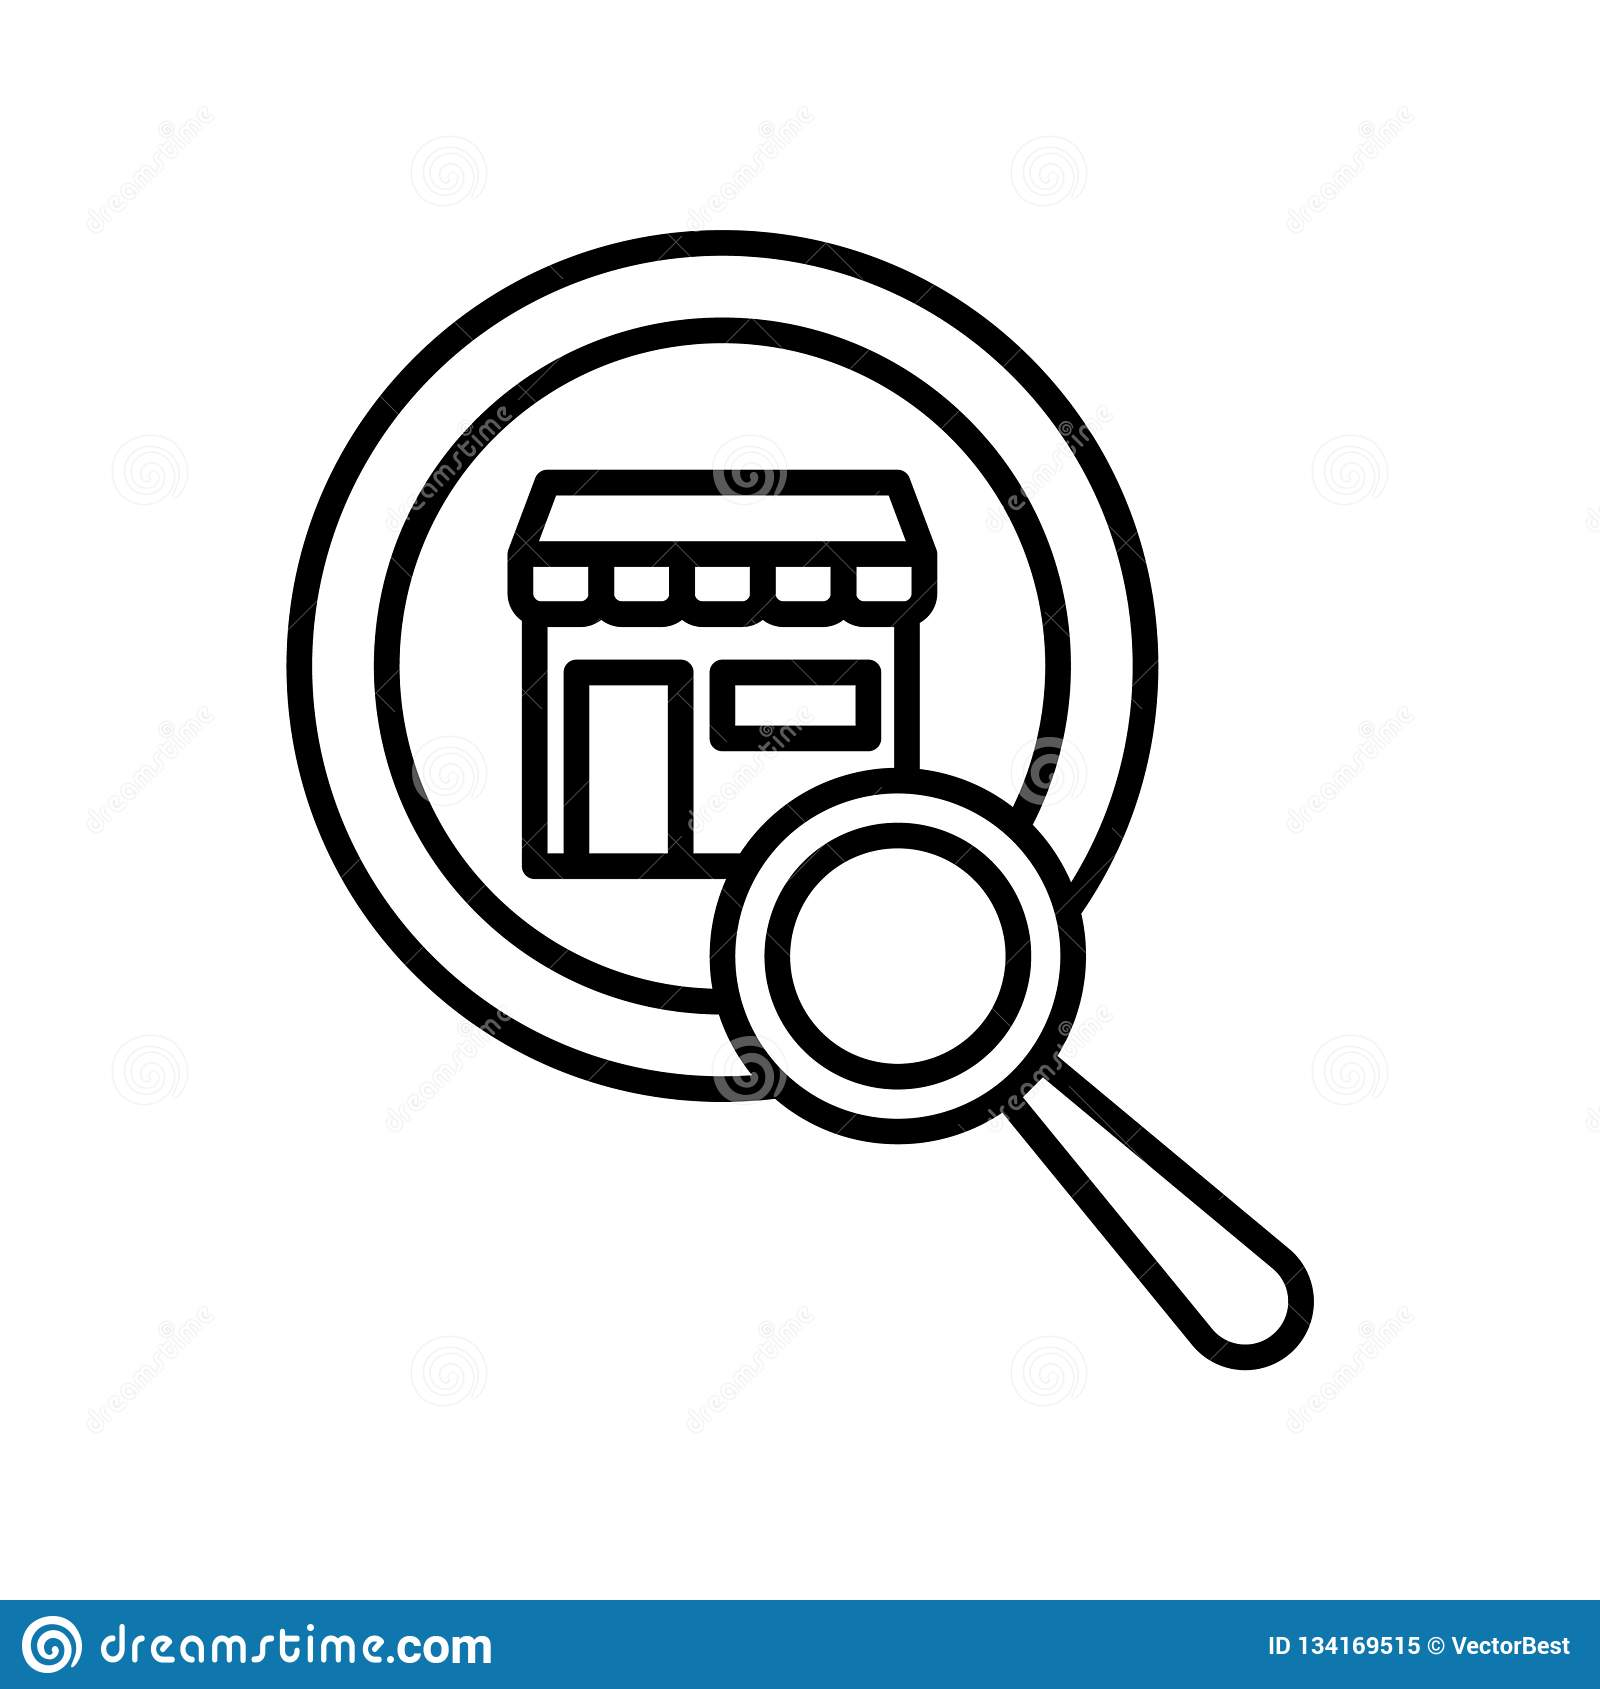 Search icon vector isolated on white background, Search sign , thin line design elements in outline style